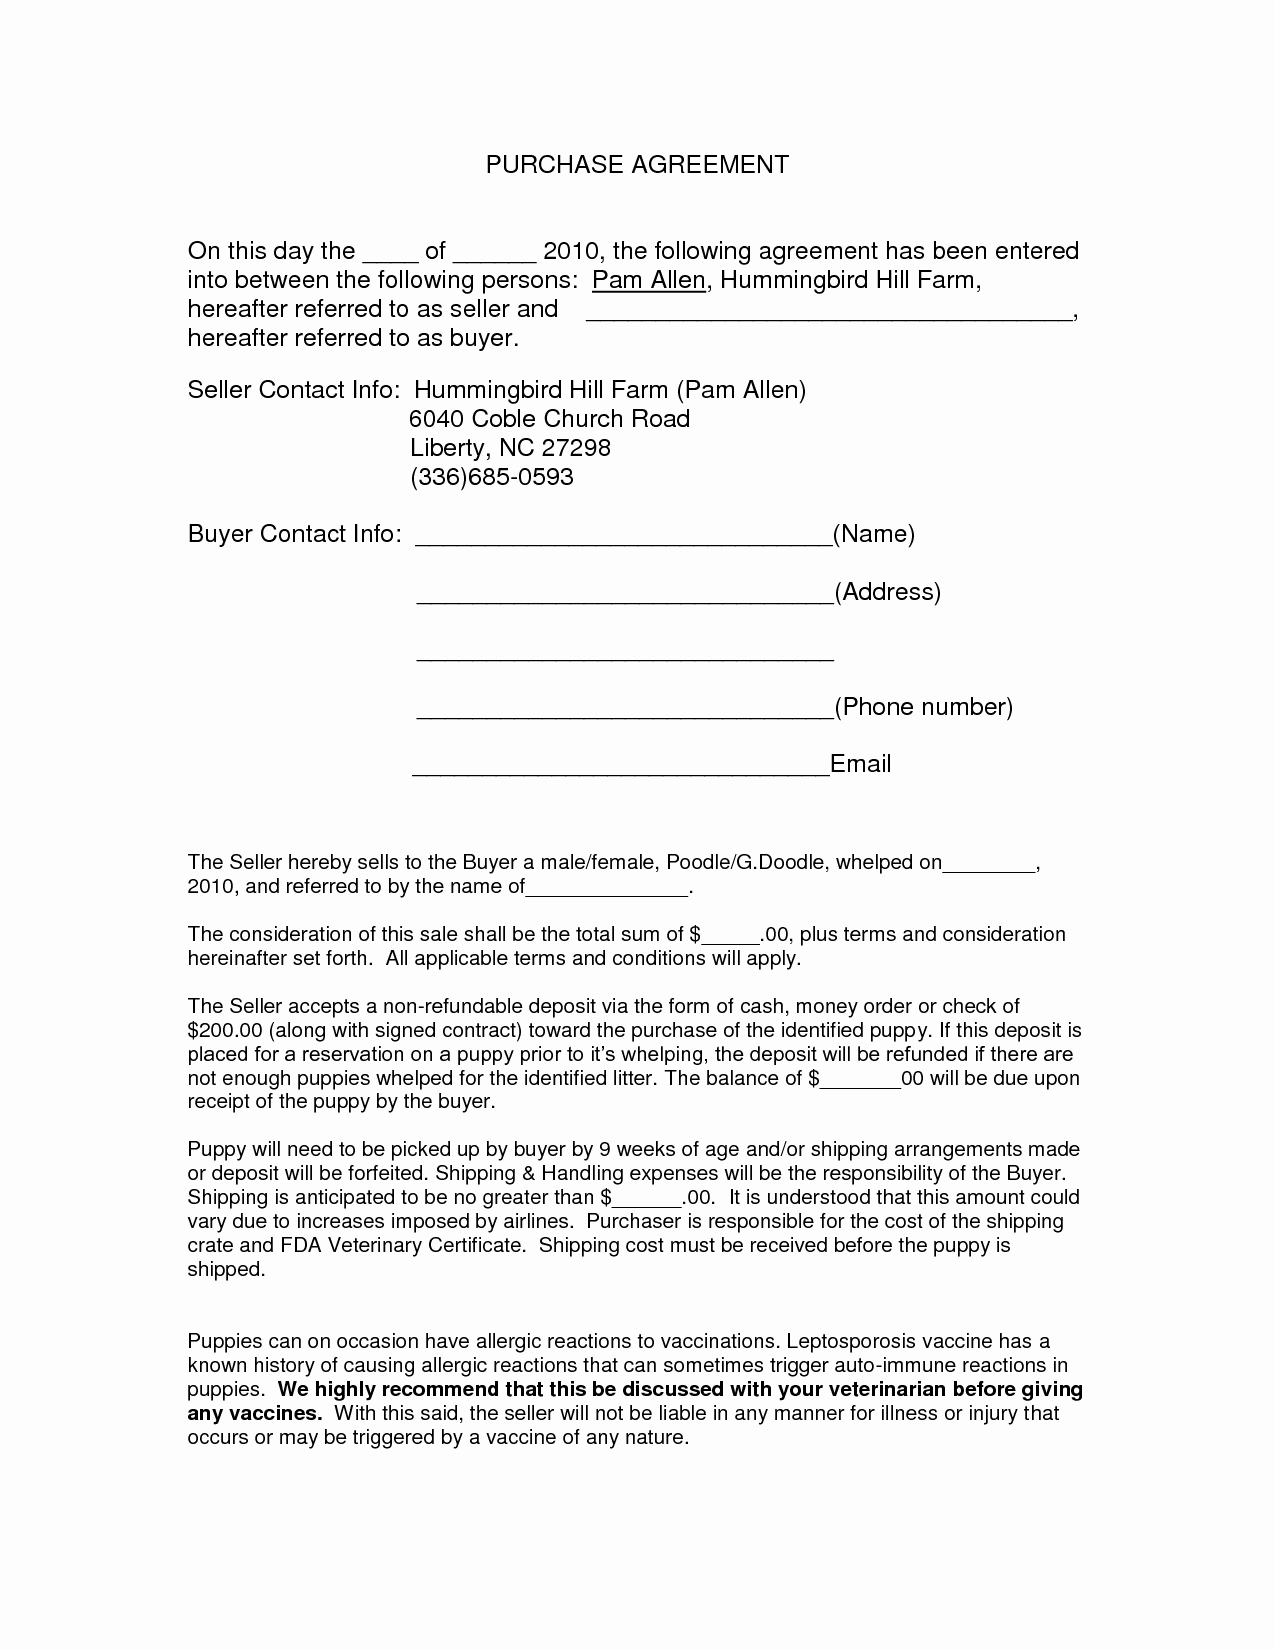 Car Deposit Agreement Lovely Auto Purchase Agreement form Doc by Nyy Purchase